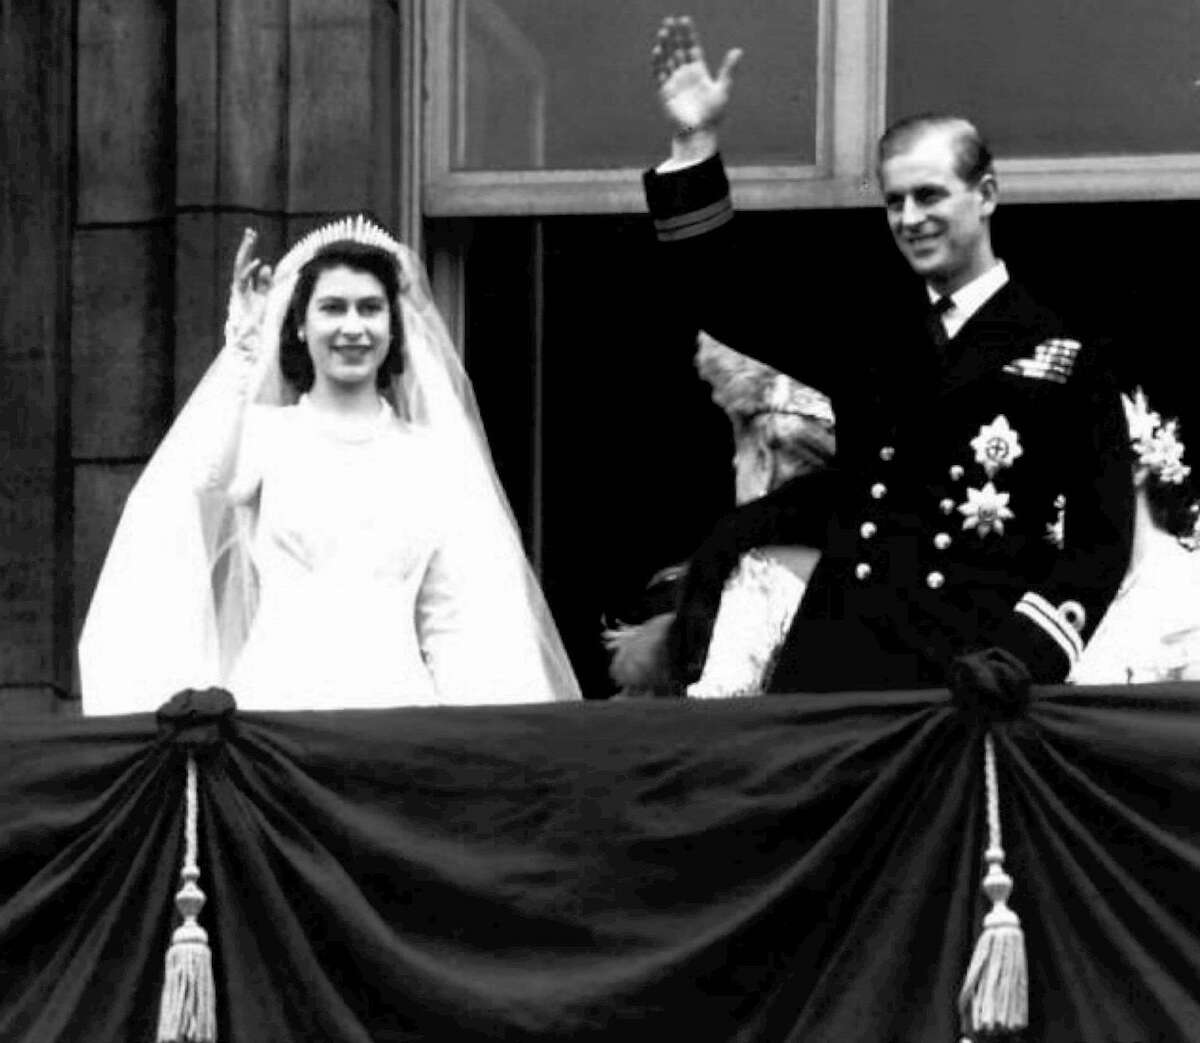 Britain's Queen Elizabeth II and her husband Prince Philip, wave from the balcony of London's Buckingham Palace, following their wedding at Westminster Abbey, in this November 20, 1947 file photo. Keep clicking to take a look at other beautiful royal weddings from around the world.